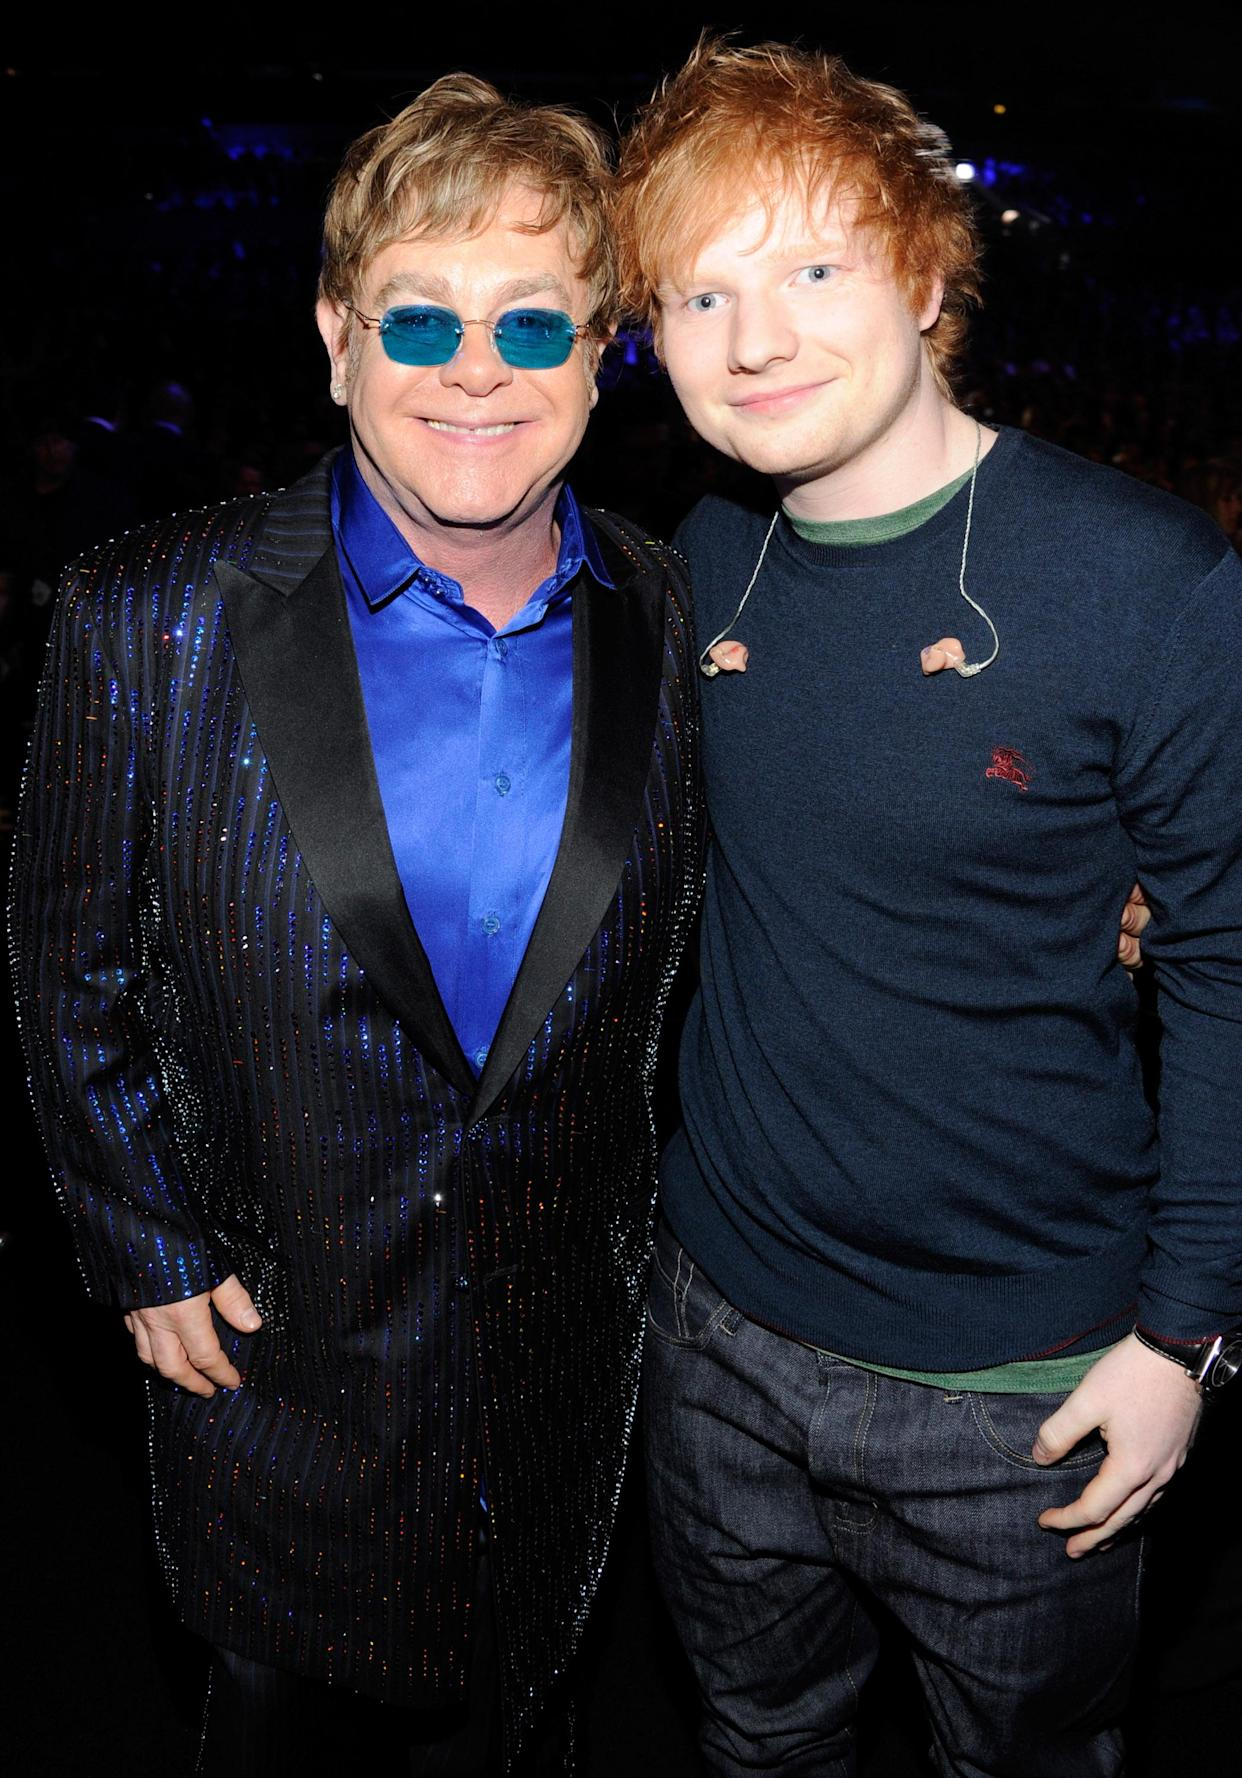 LOS ANGELES, CA - FEBRUARY 10:  Elton John and Ed Sheeran attends the 55th Annual GRAMMY Awards at STAPLES Center on February 10, 2013 in Los Angeles, California.  (Photo by Kevin Mazur/WireImage)